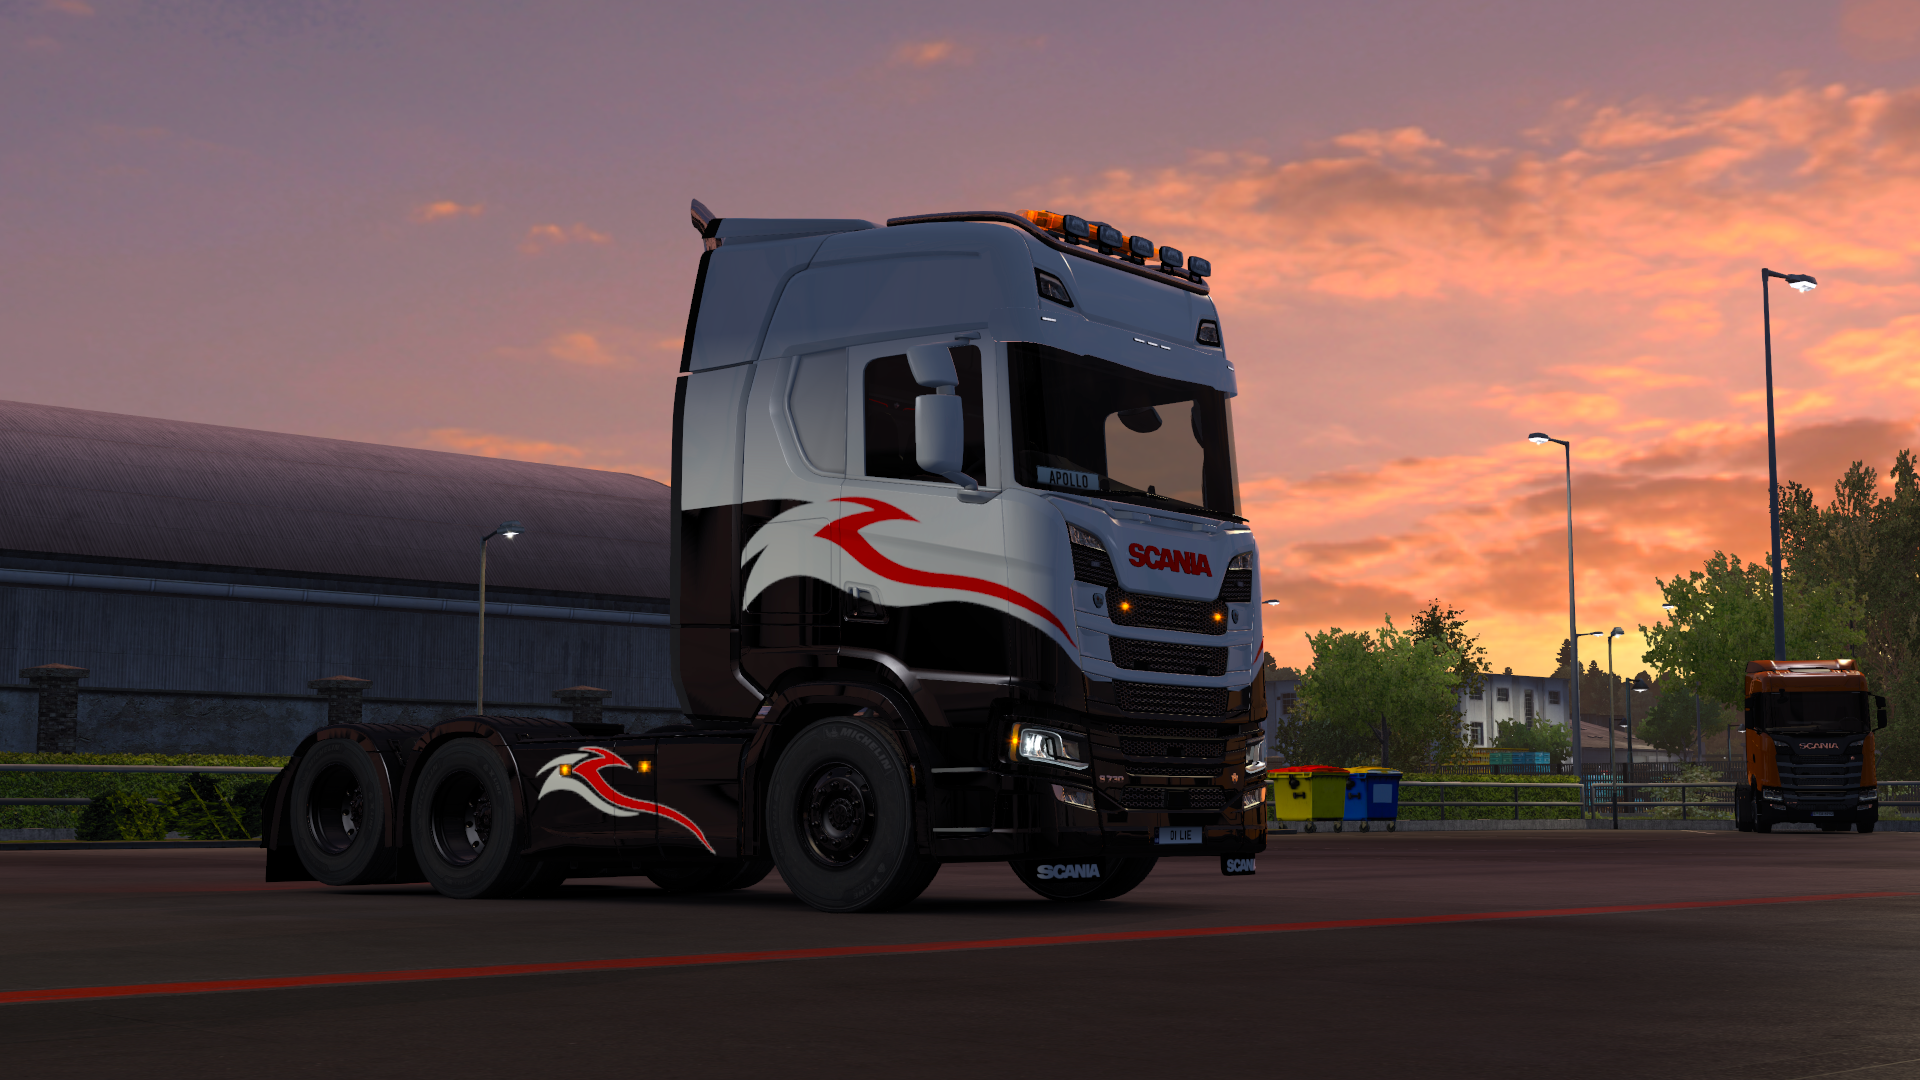 ets2_20181031_174919_00.png